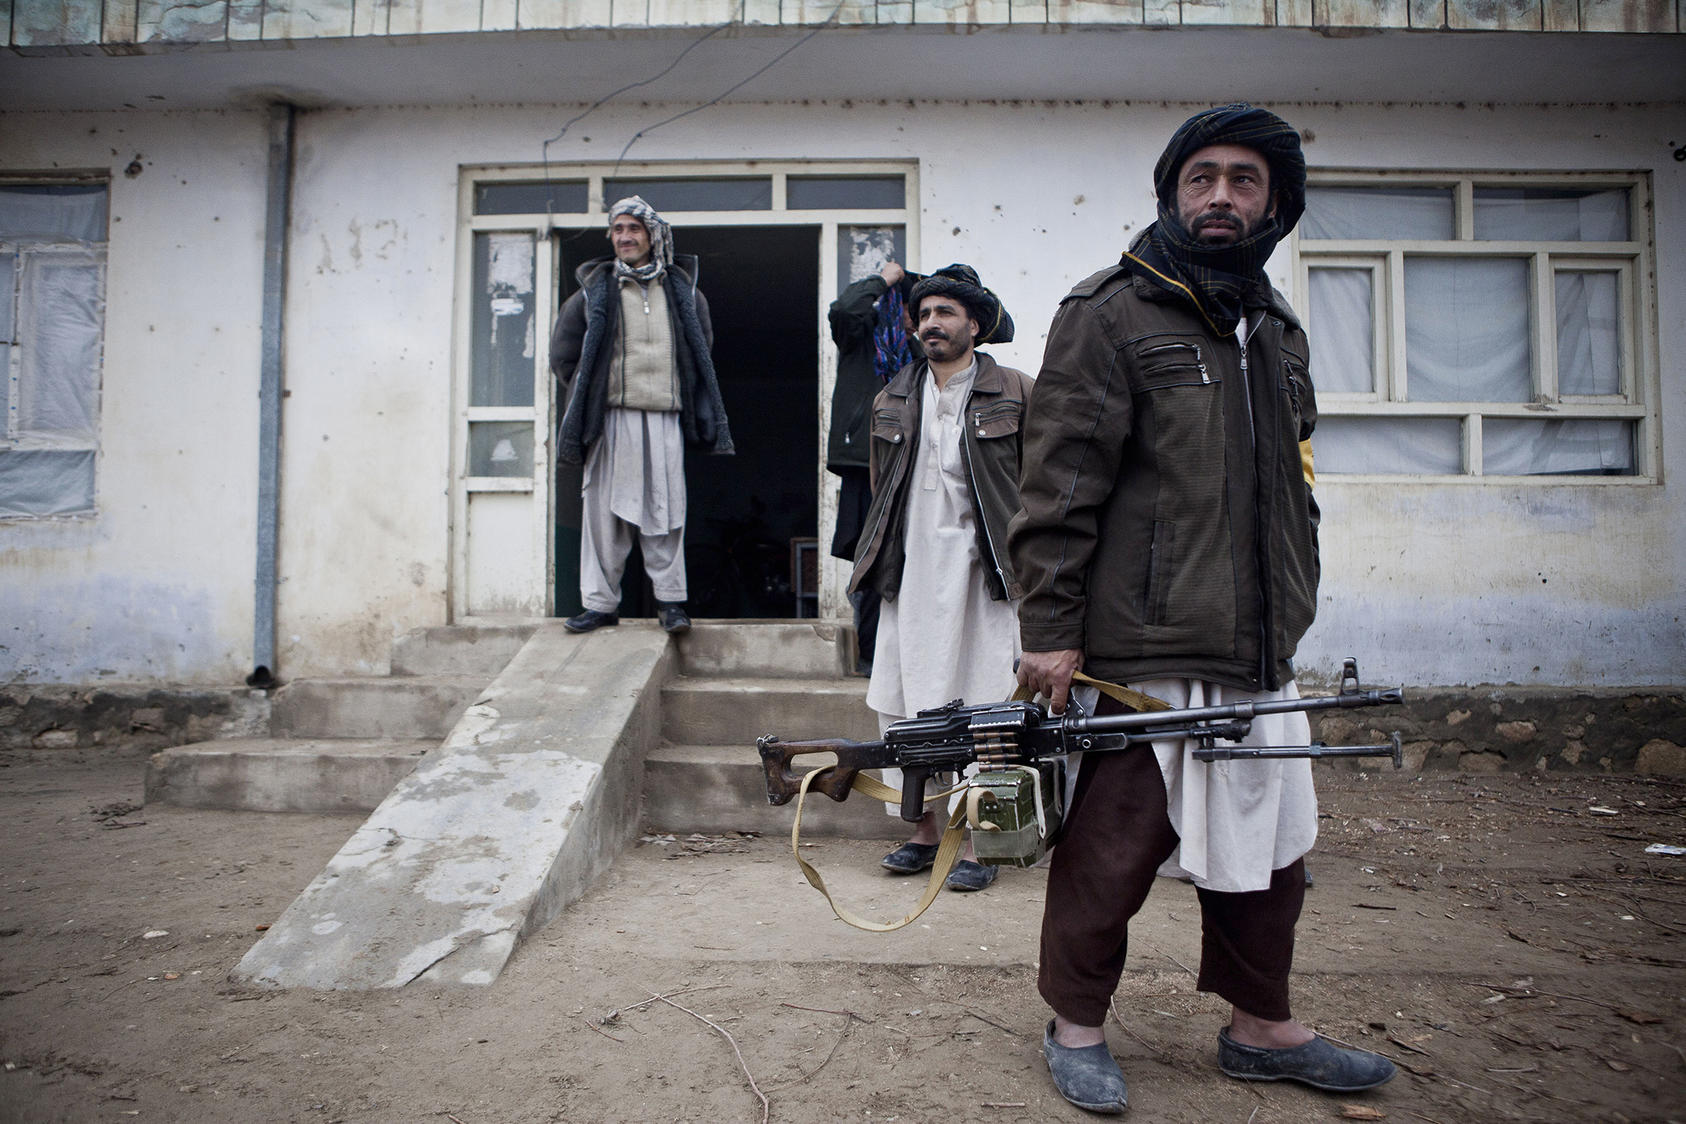 Men from one of Afghanistan's many militia forces carry a machine gun on patrol in Balkh province. Years of war have made guns and combativeness more central to Afghan men's ideas of masculinity—a hurdle to peacemaking. (Bryan Denton/The New York Times)